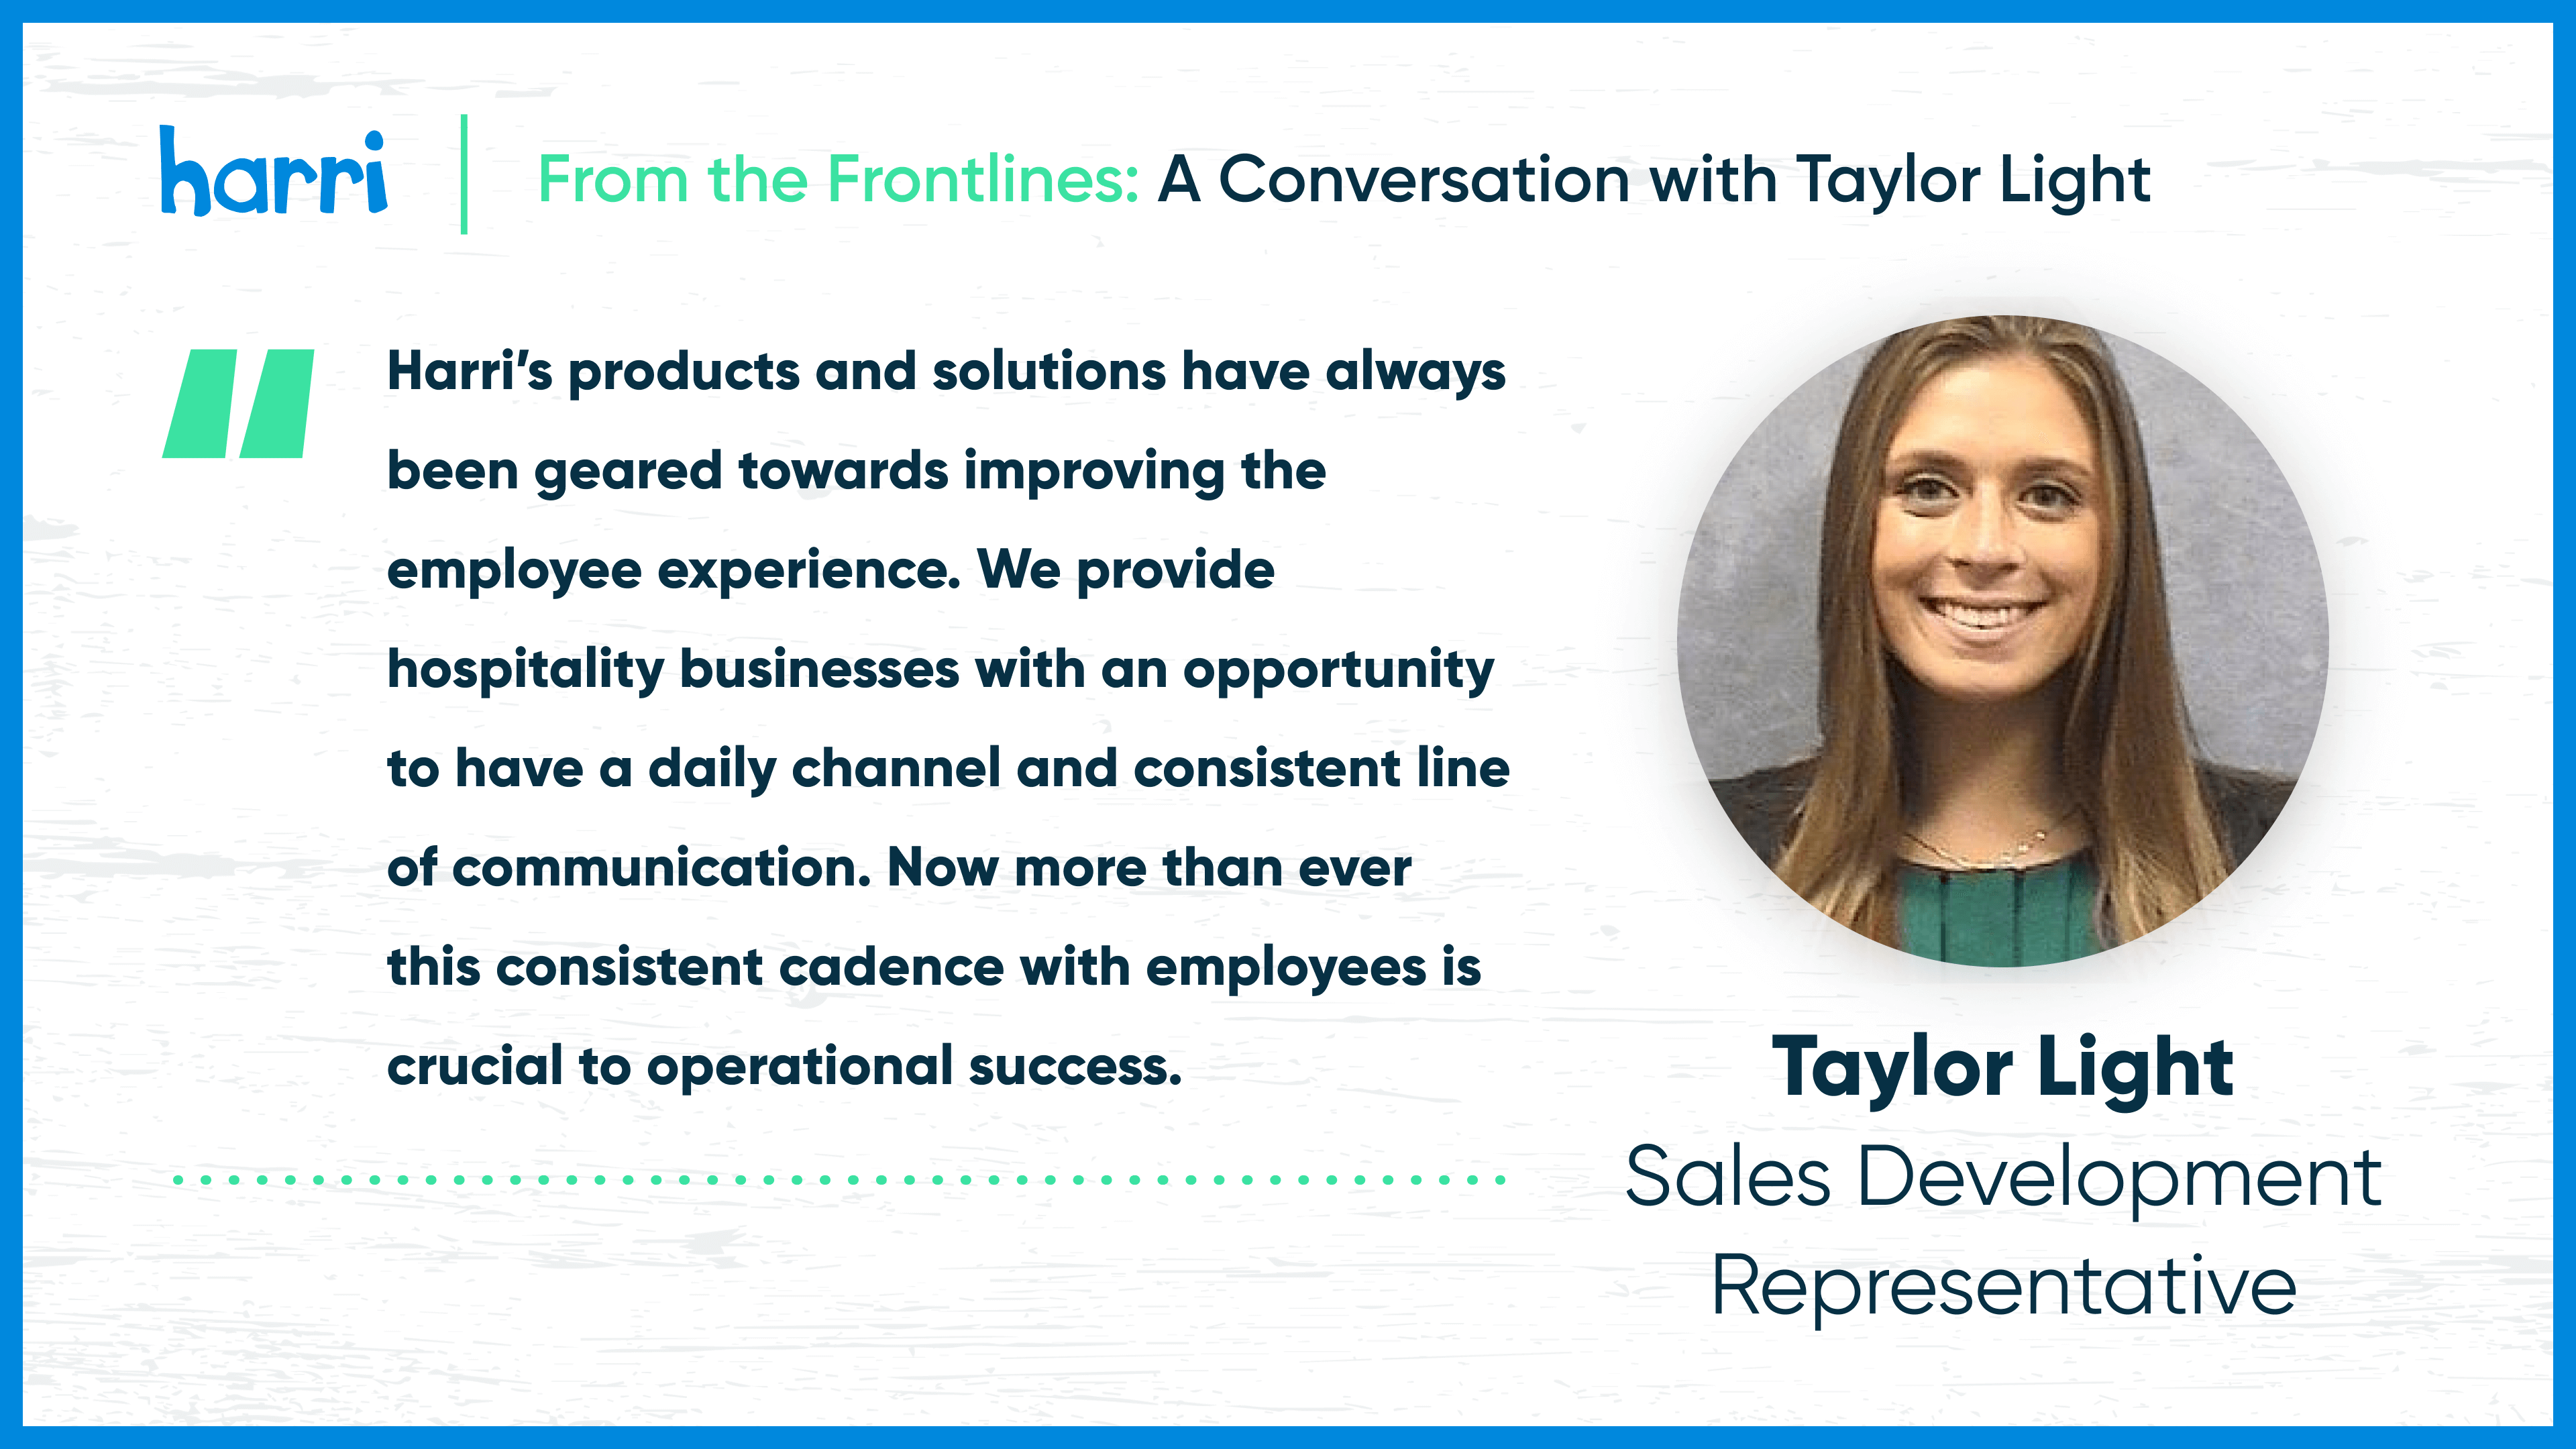 From the Frontlines: Taylor Light and employee morale